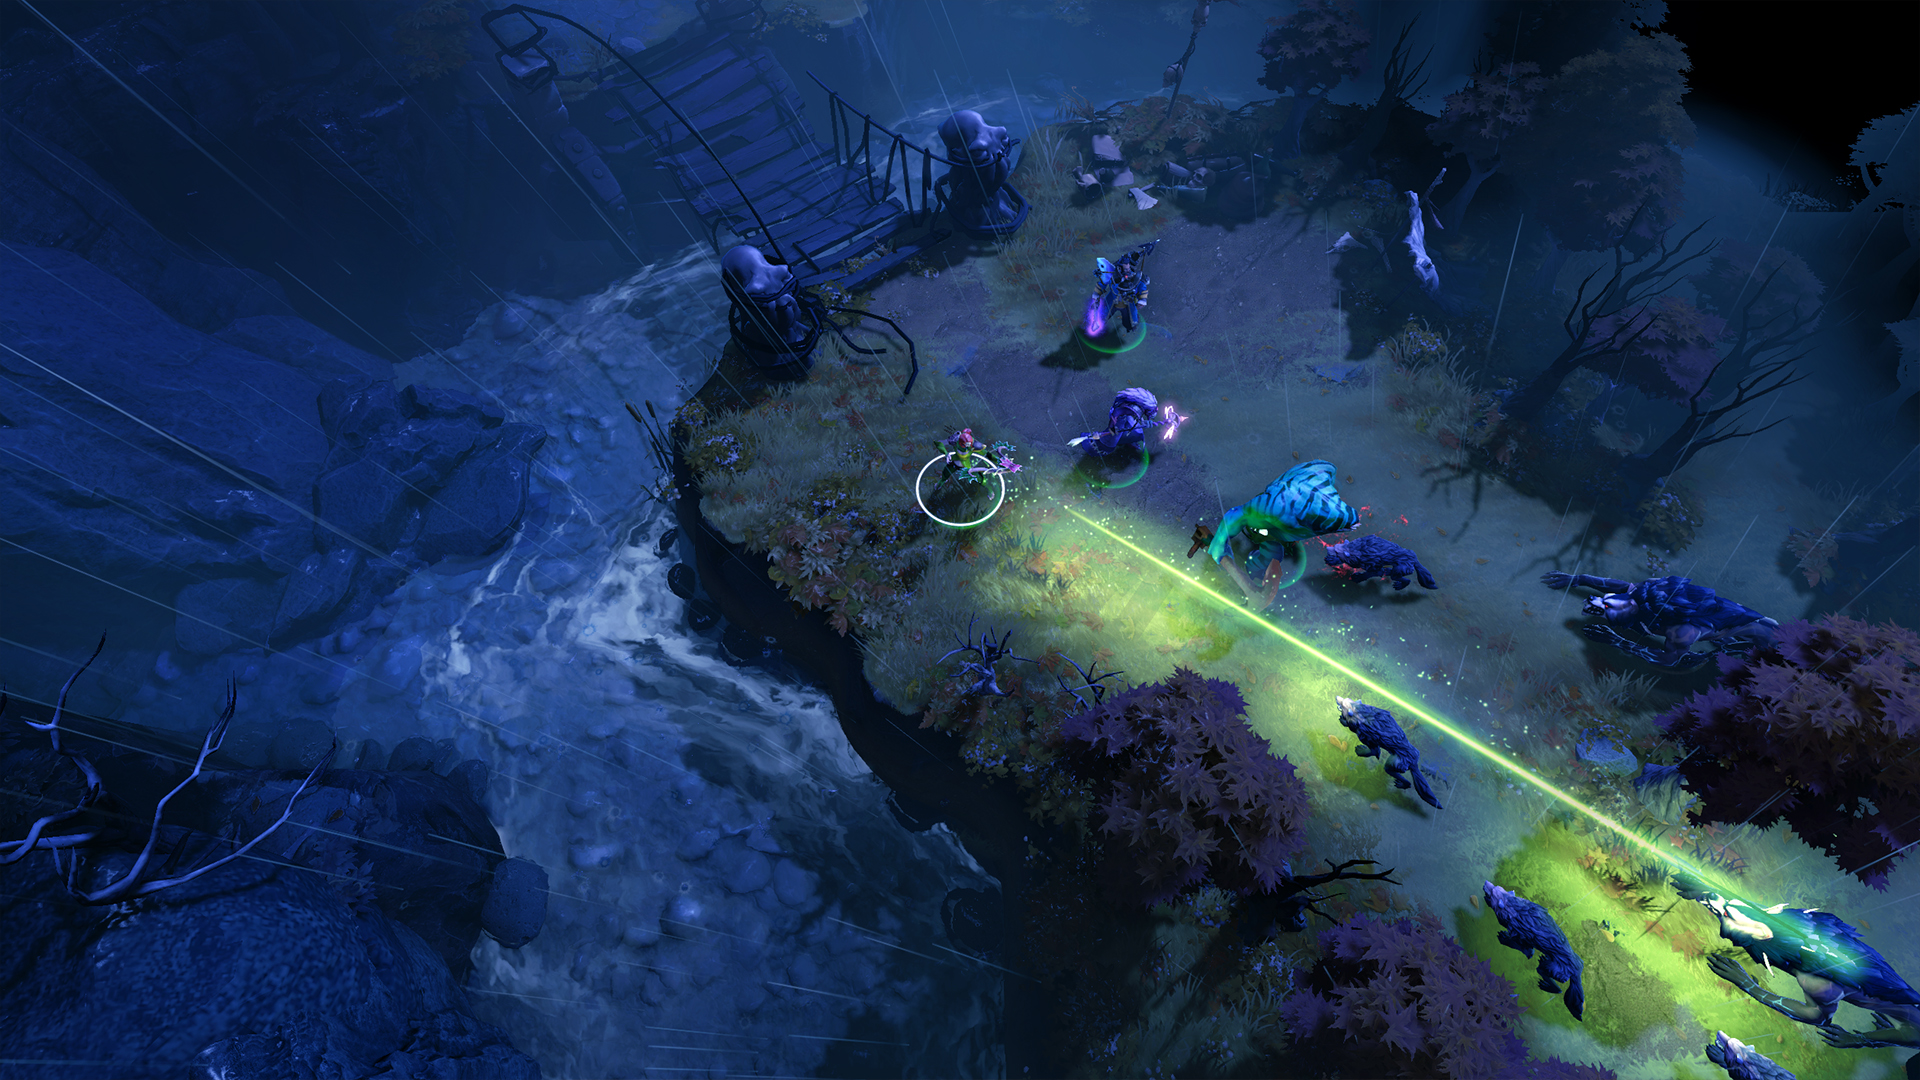 Siltbreaker, the first chunk of Dota 2's co-op PvE campaign